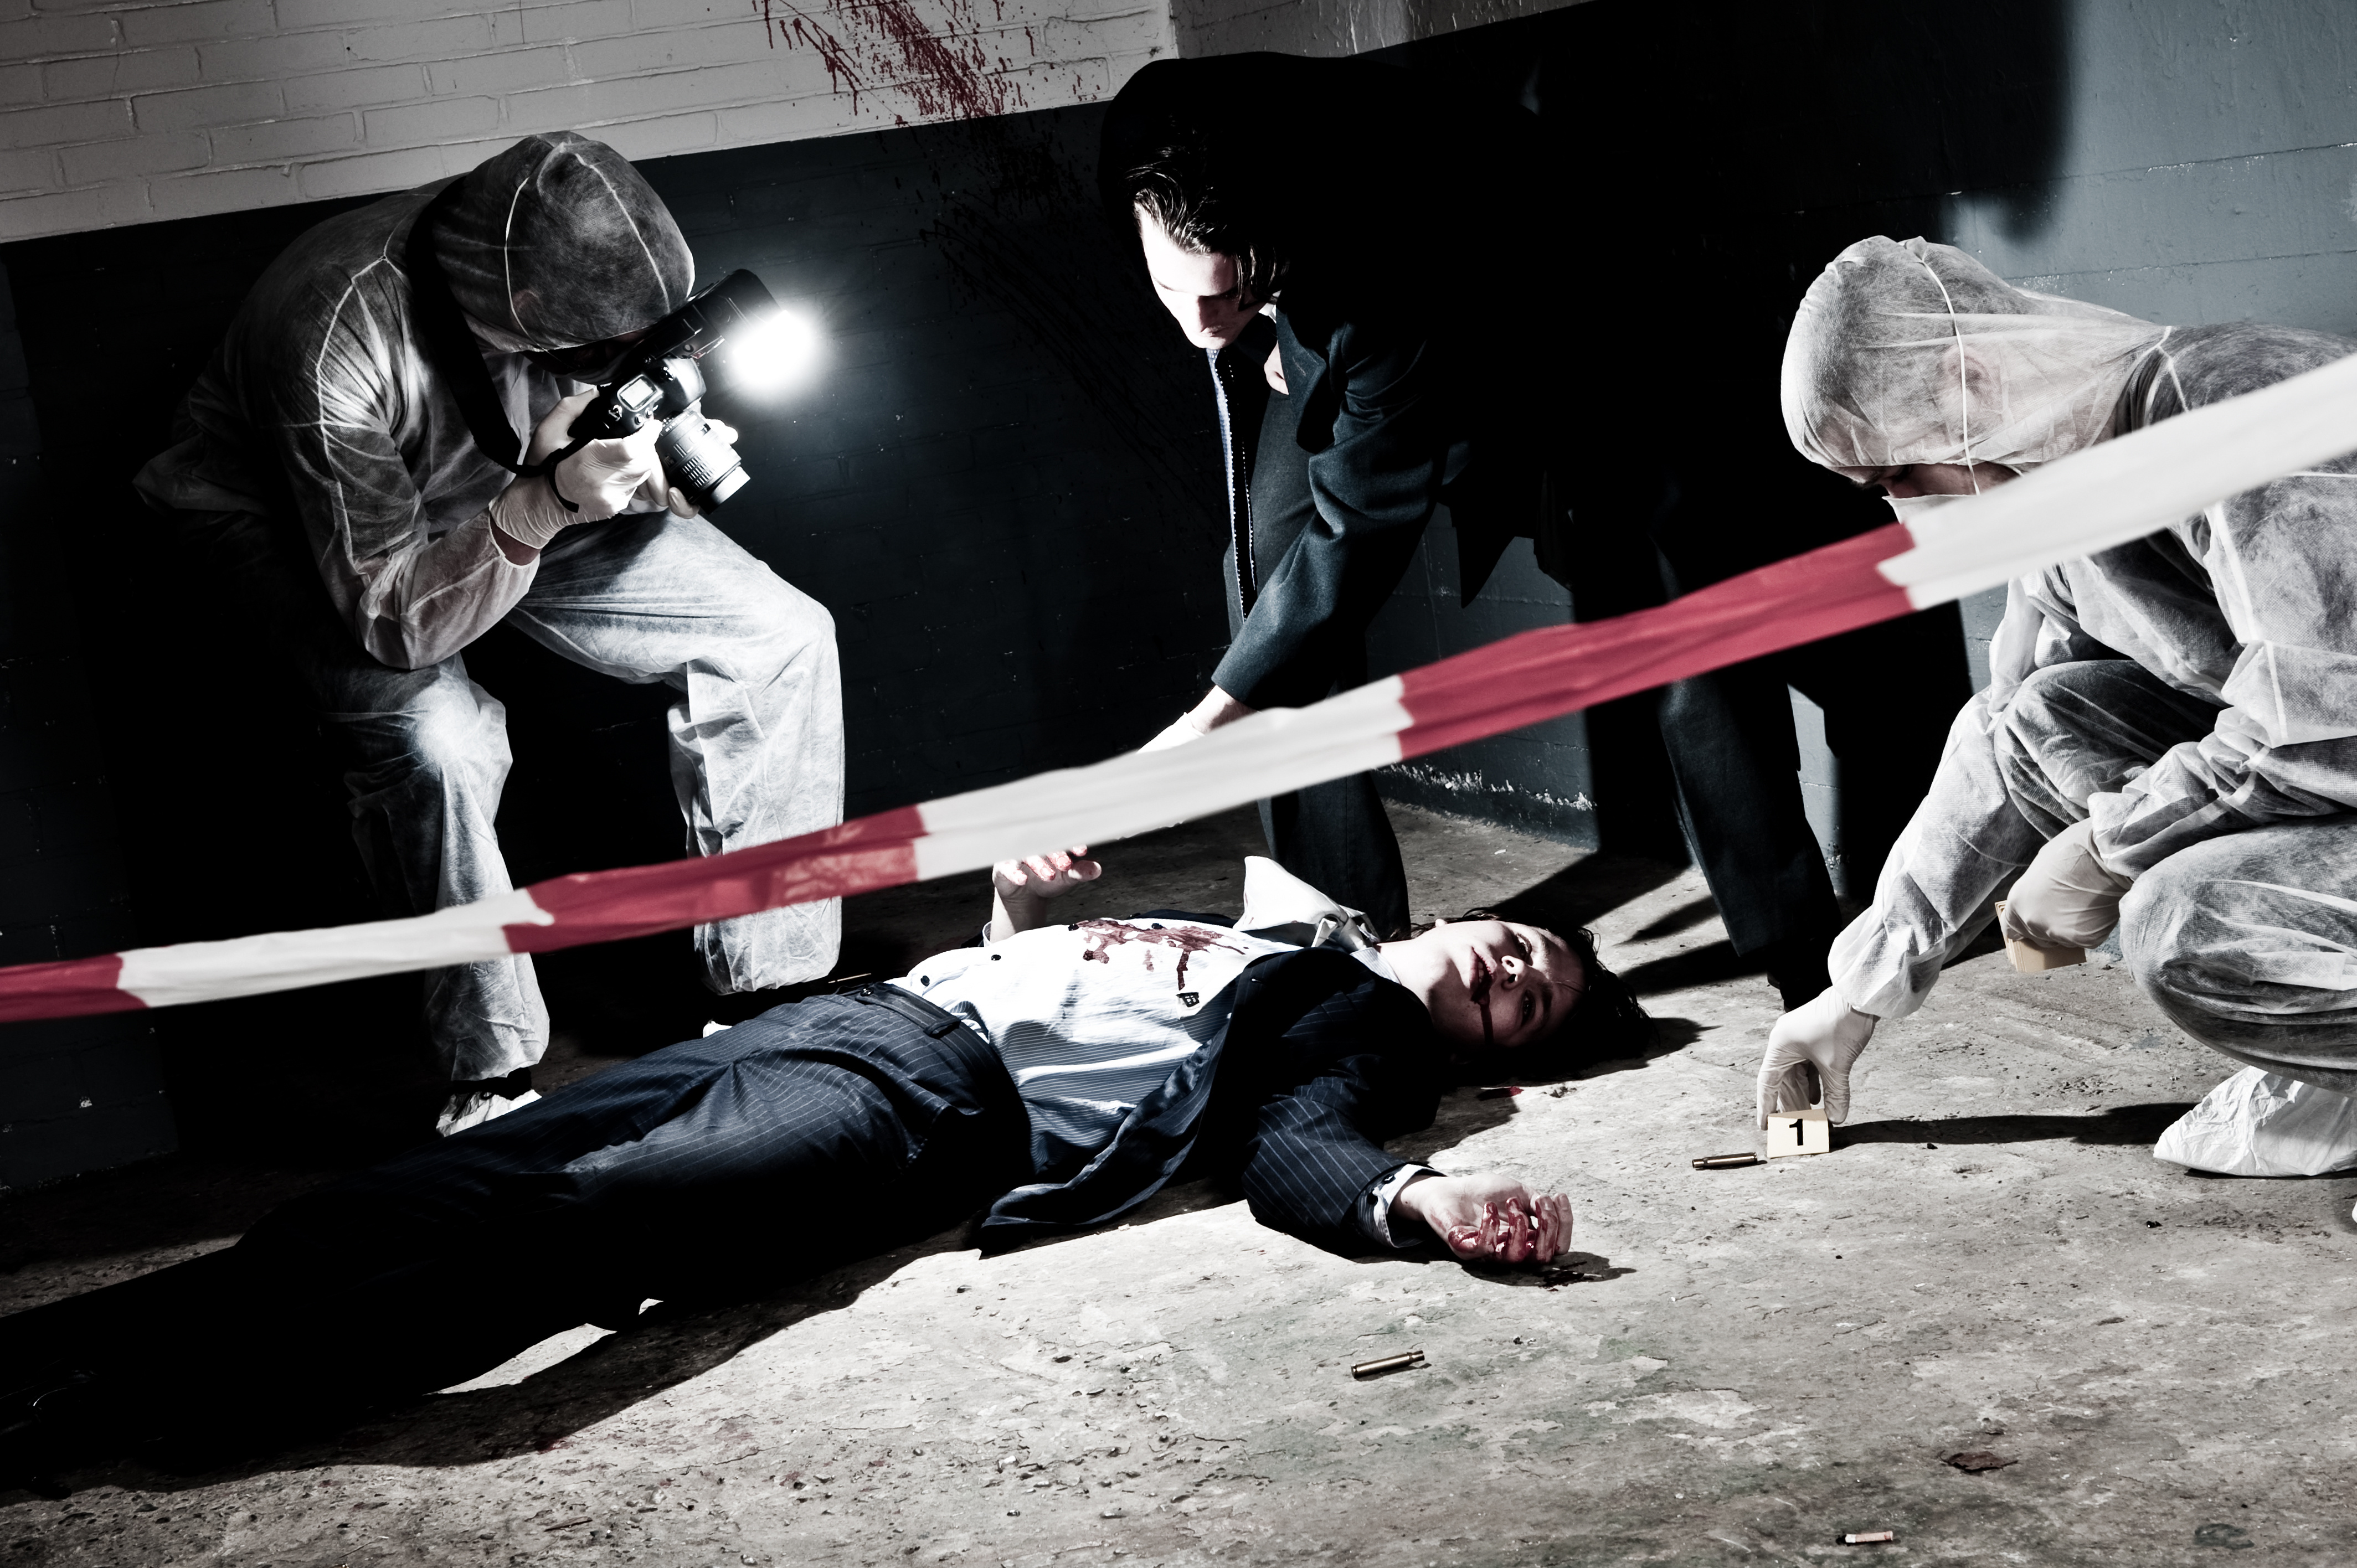 A cross processed murder scene with two forensic analysts and a police lieutenant investigating a crime on a businessman in a basementMurder scene with two forensic analysts and a police lieutenant investigating a crime on a businessman in a basement